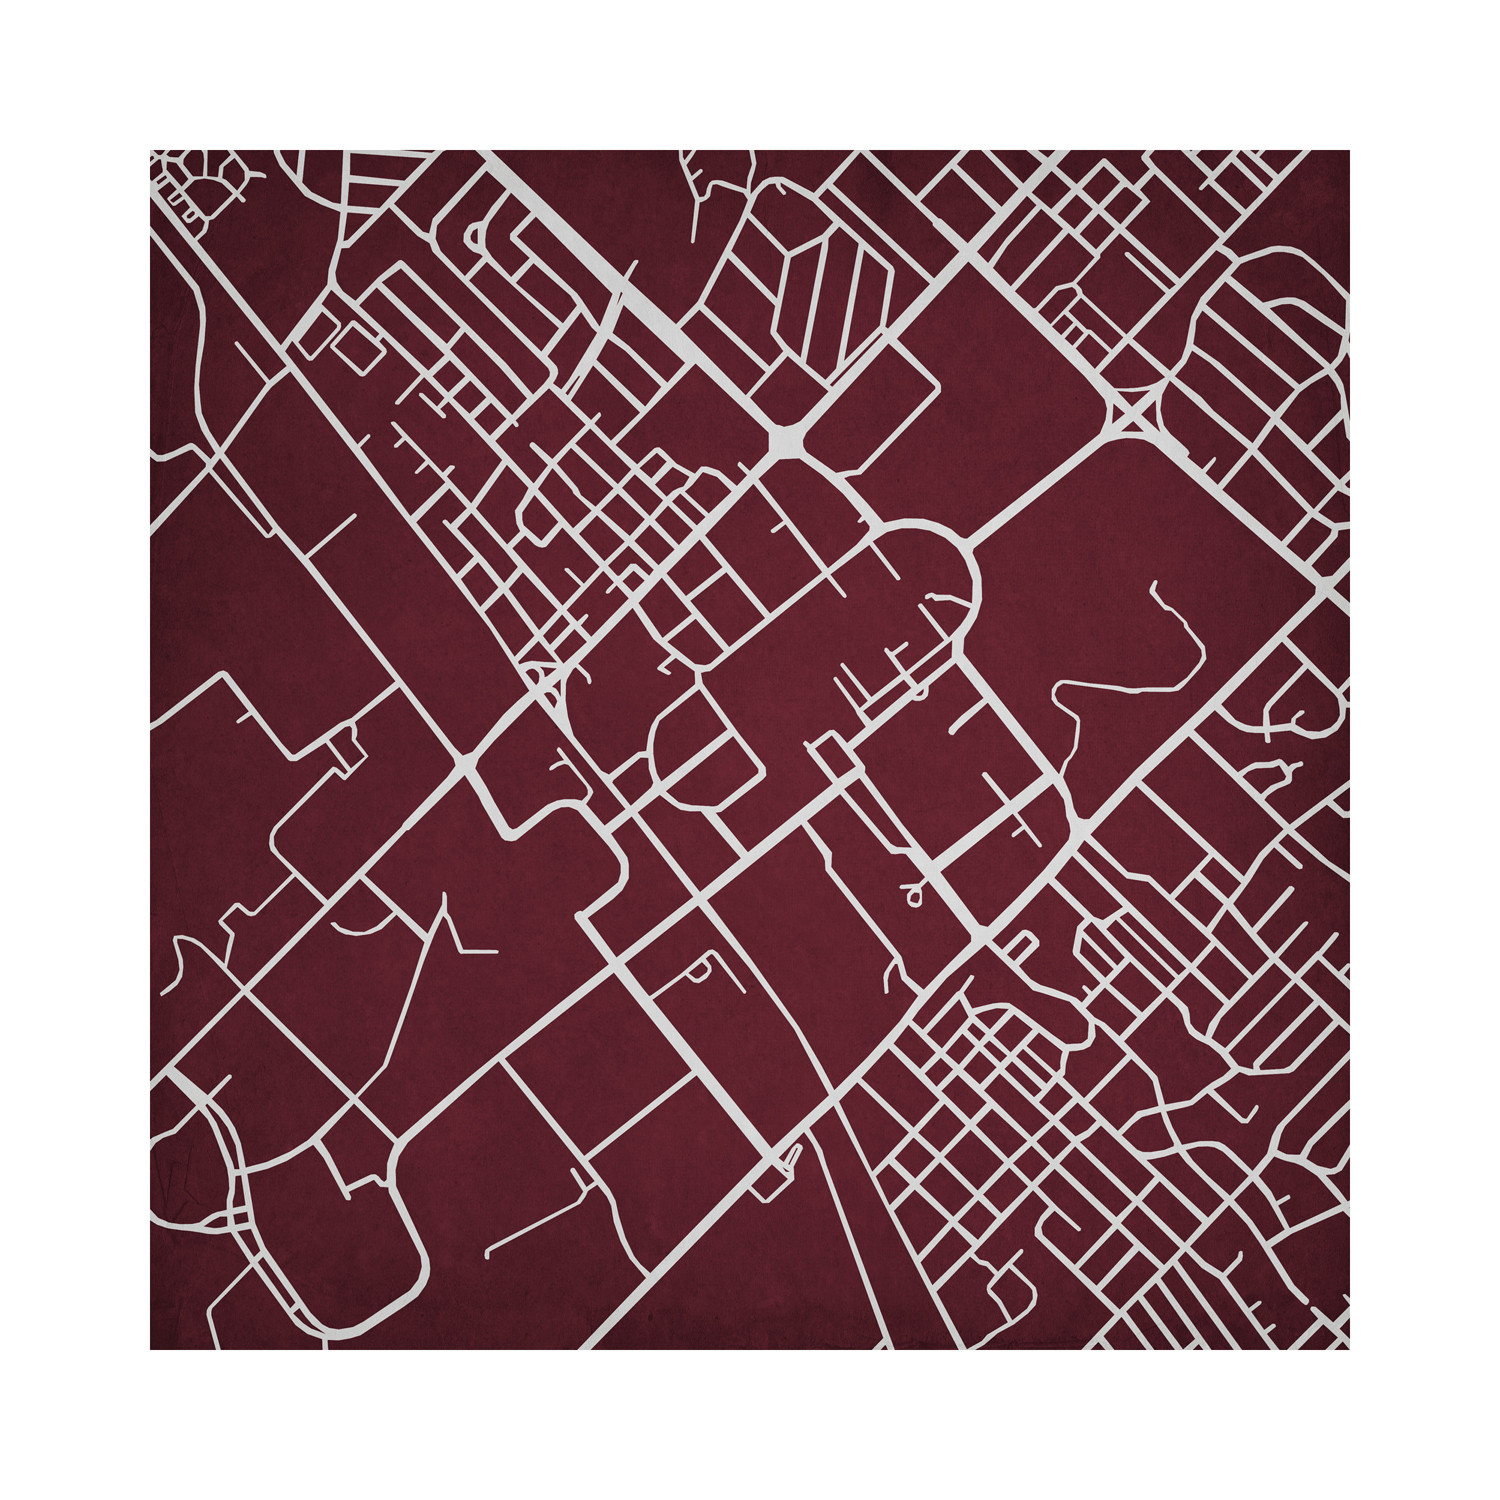 Map Of Texas Am.Texas A M University Campus Maps Touch Of Modern